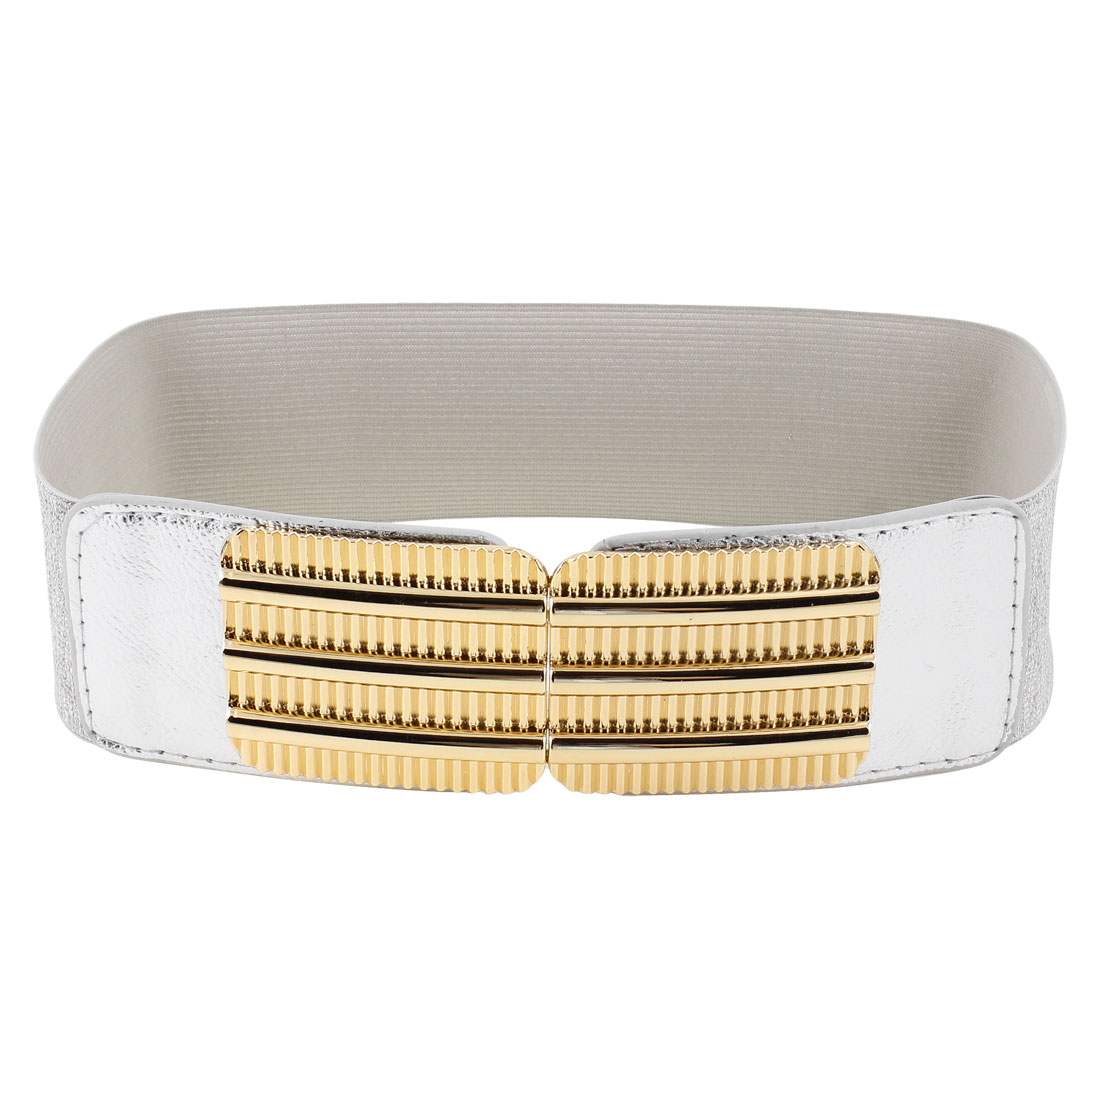 Woman Railway Design Interlocking Buckle Glittery Cinch Waist Belt Silver Tone